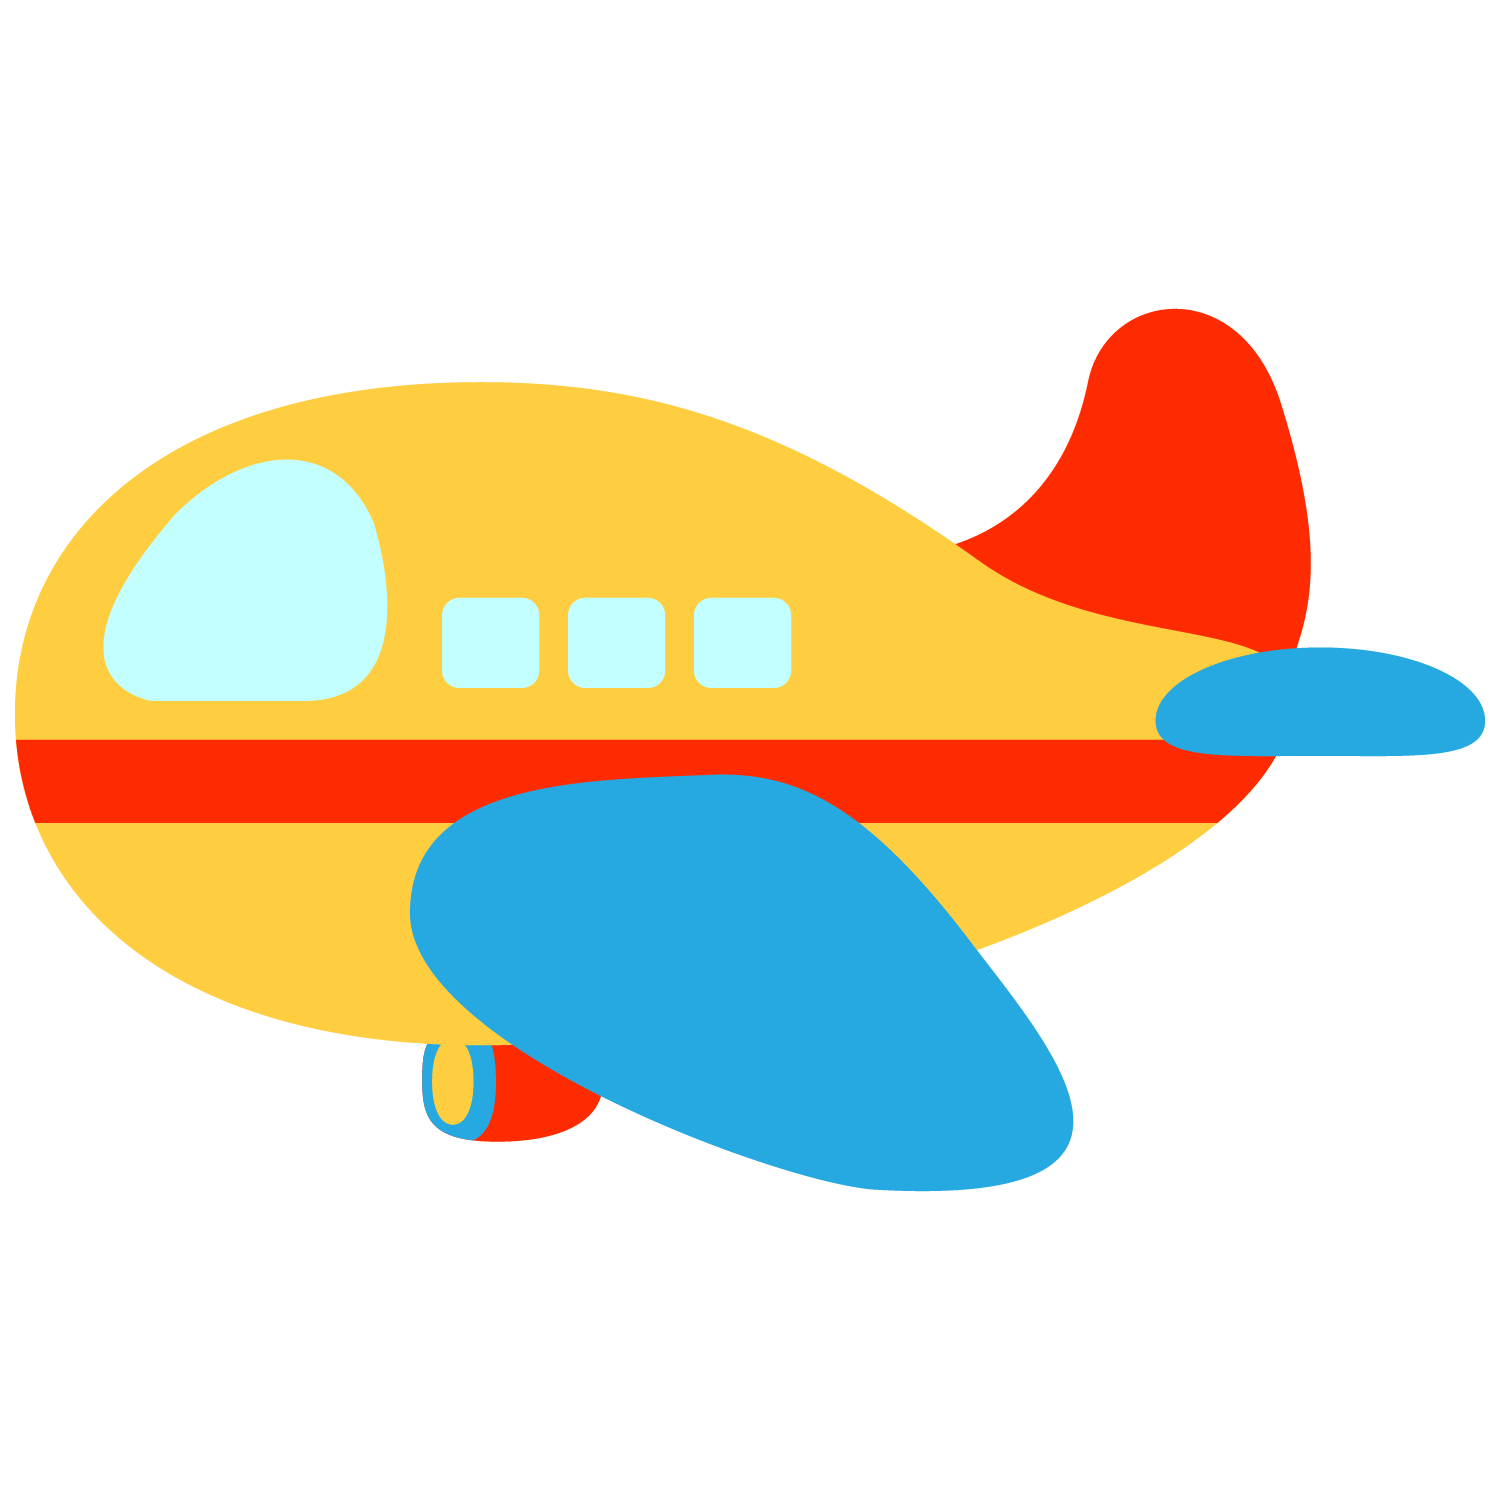 Clipart door airplane. De gucciguanfangwang me meios